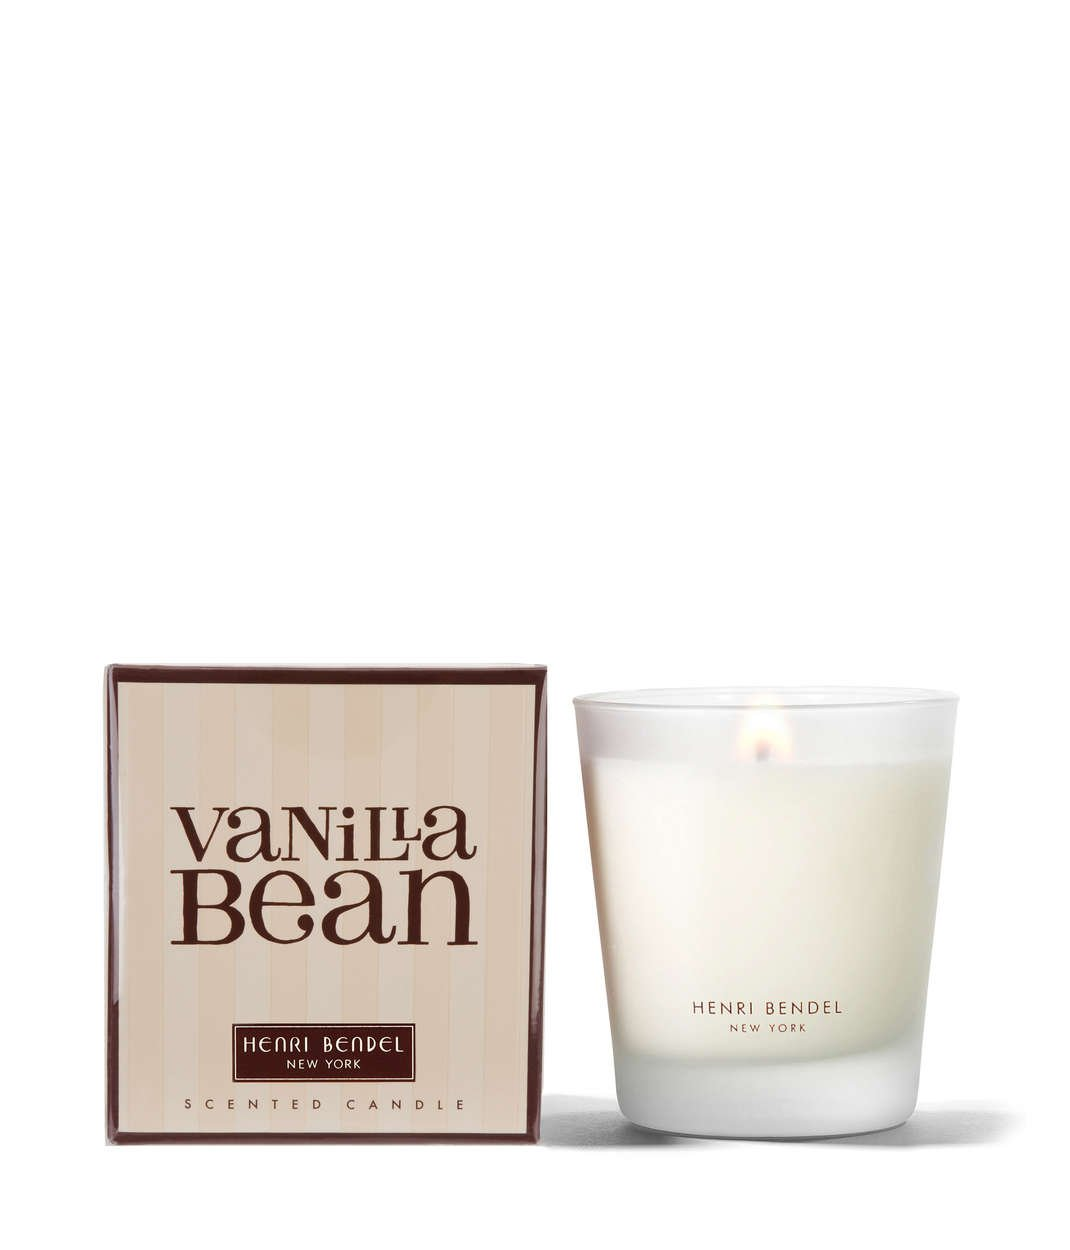 Henri Bendel Vanilla Bean Scented Candle 9.4 Ounce New In Box Bath and Body Works